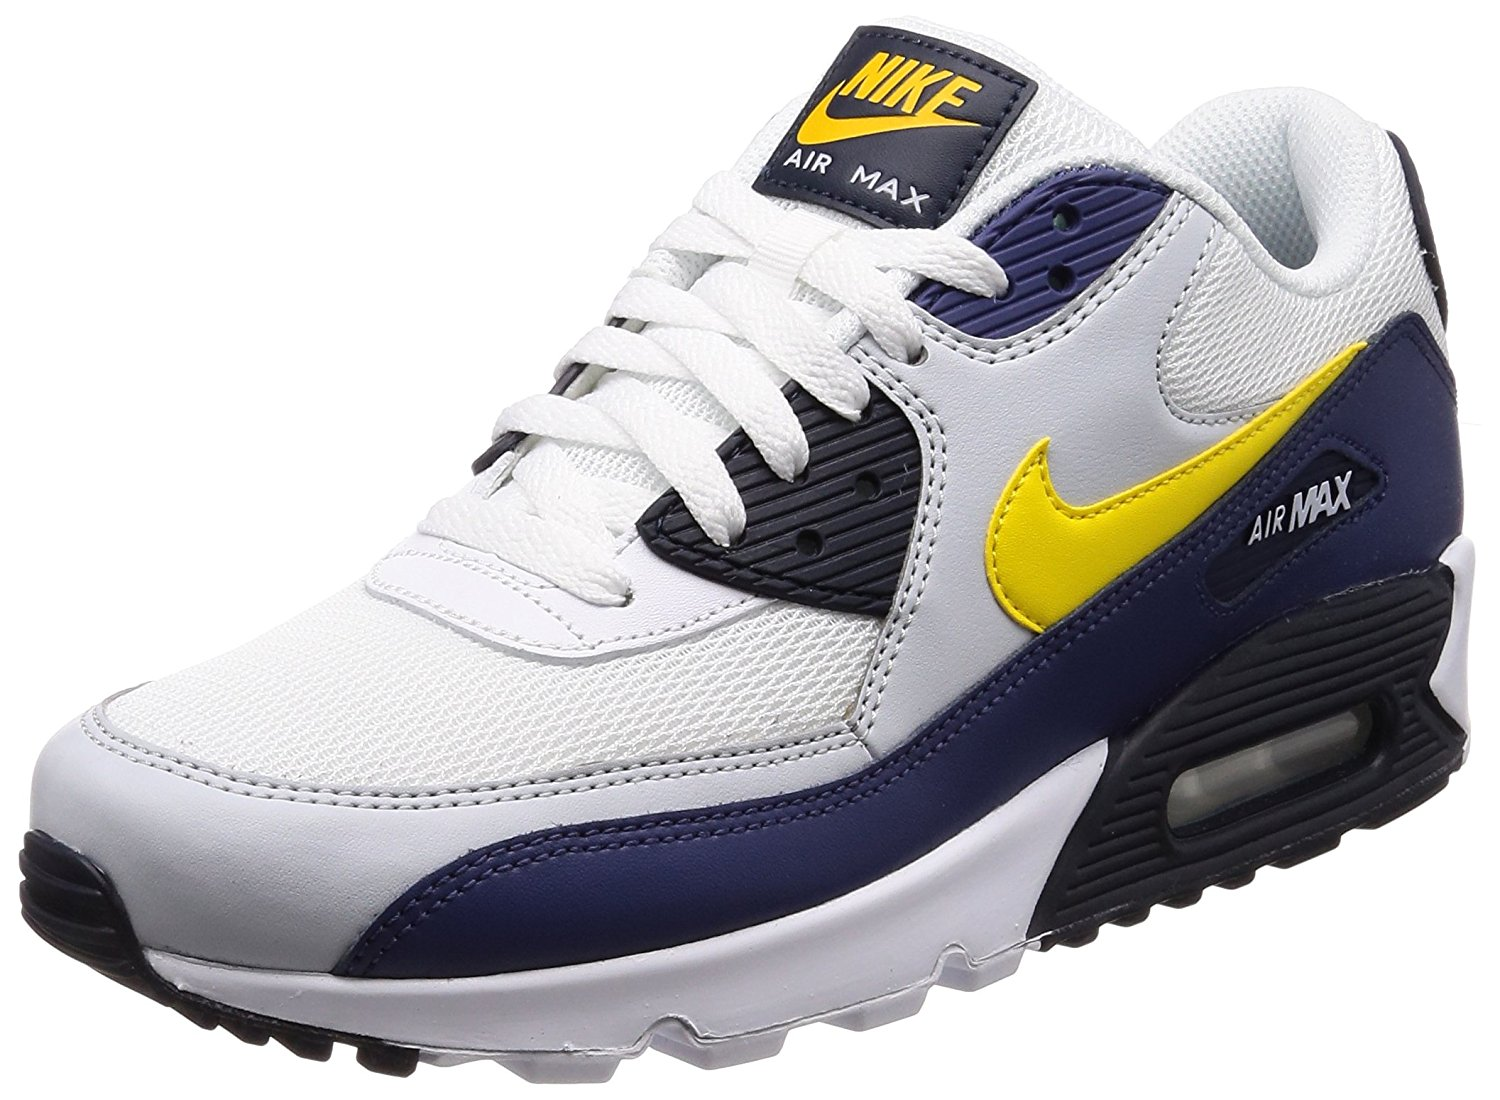 ca070a85e6 Nike Air Max 90 Reviewed for Performance in 2019 | WalkJogRun